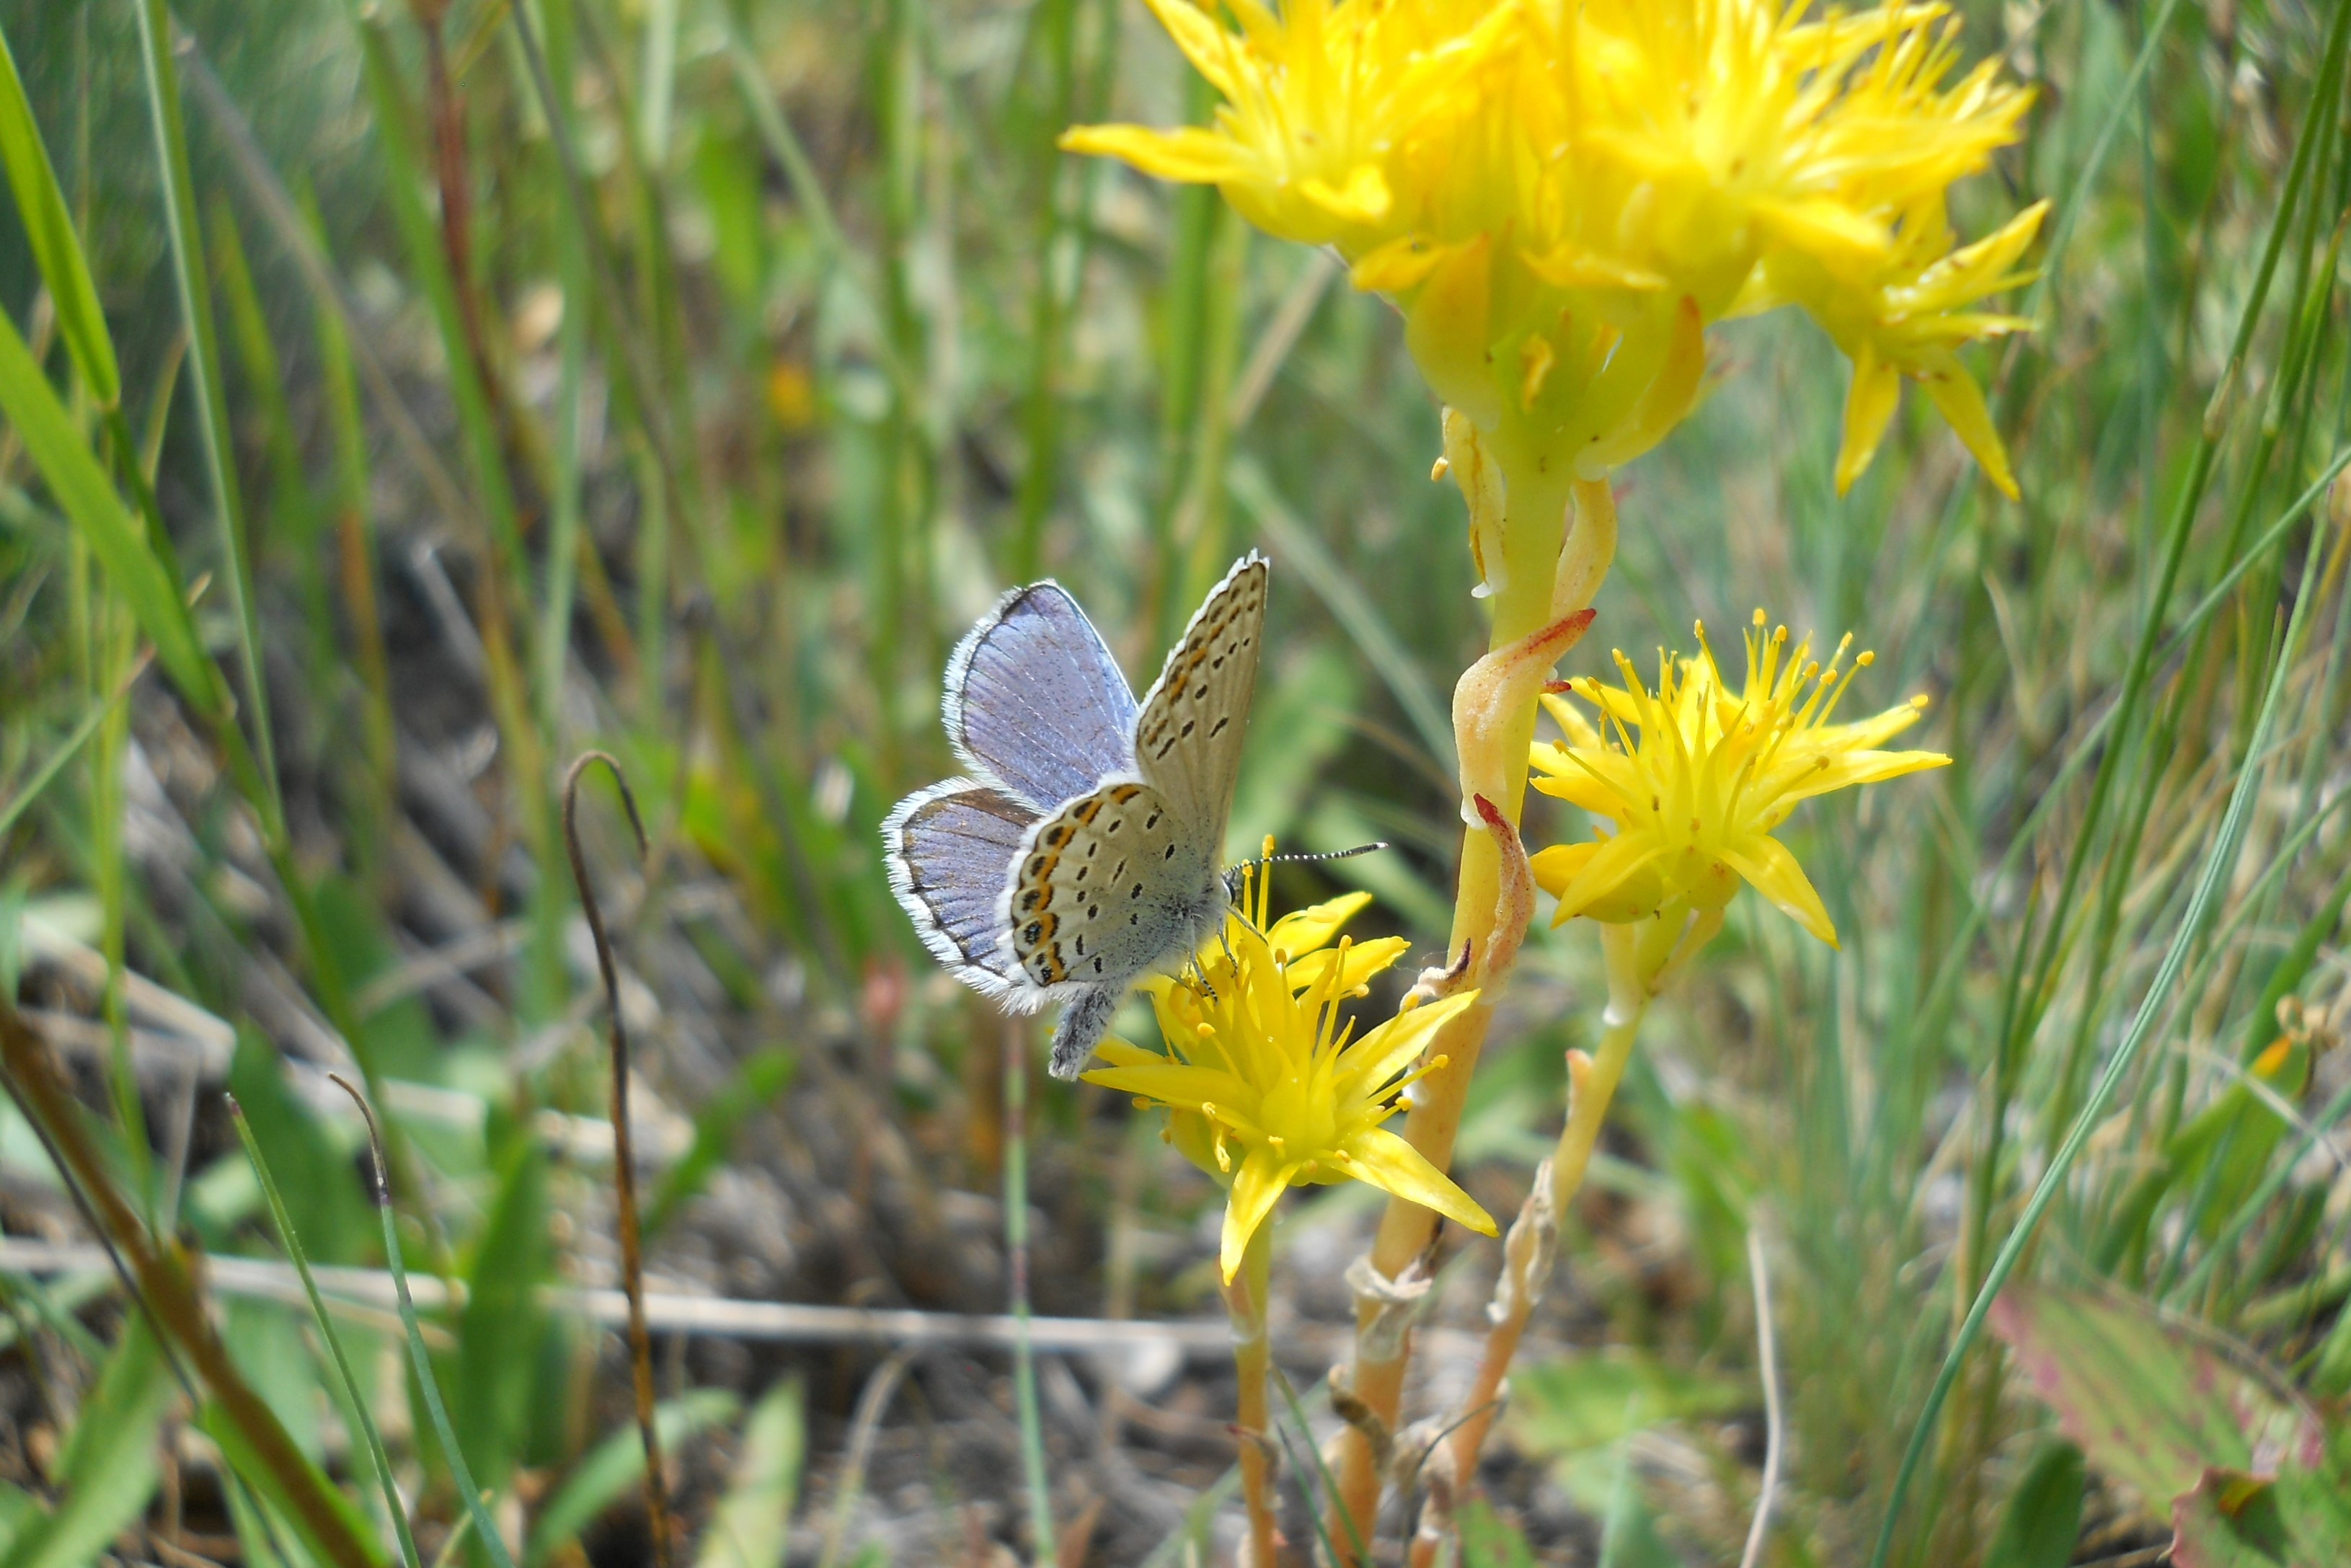 Small white butterfly resting on a yellow flower